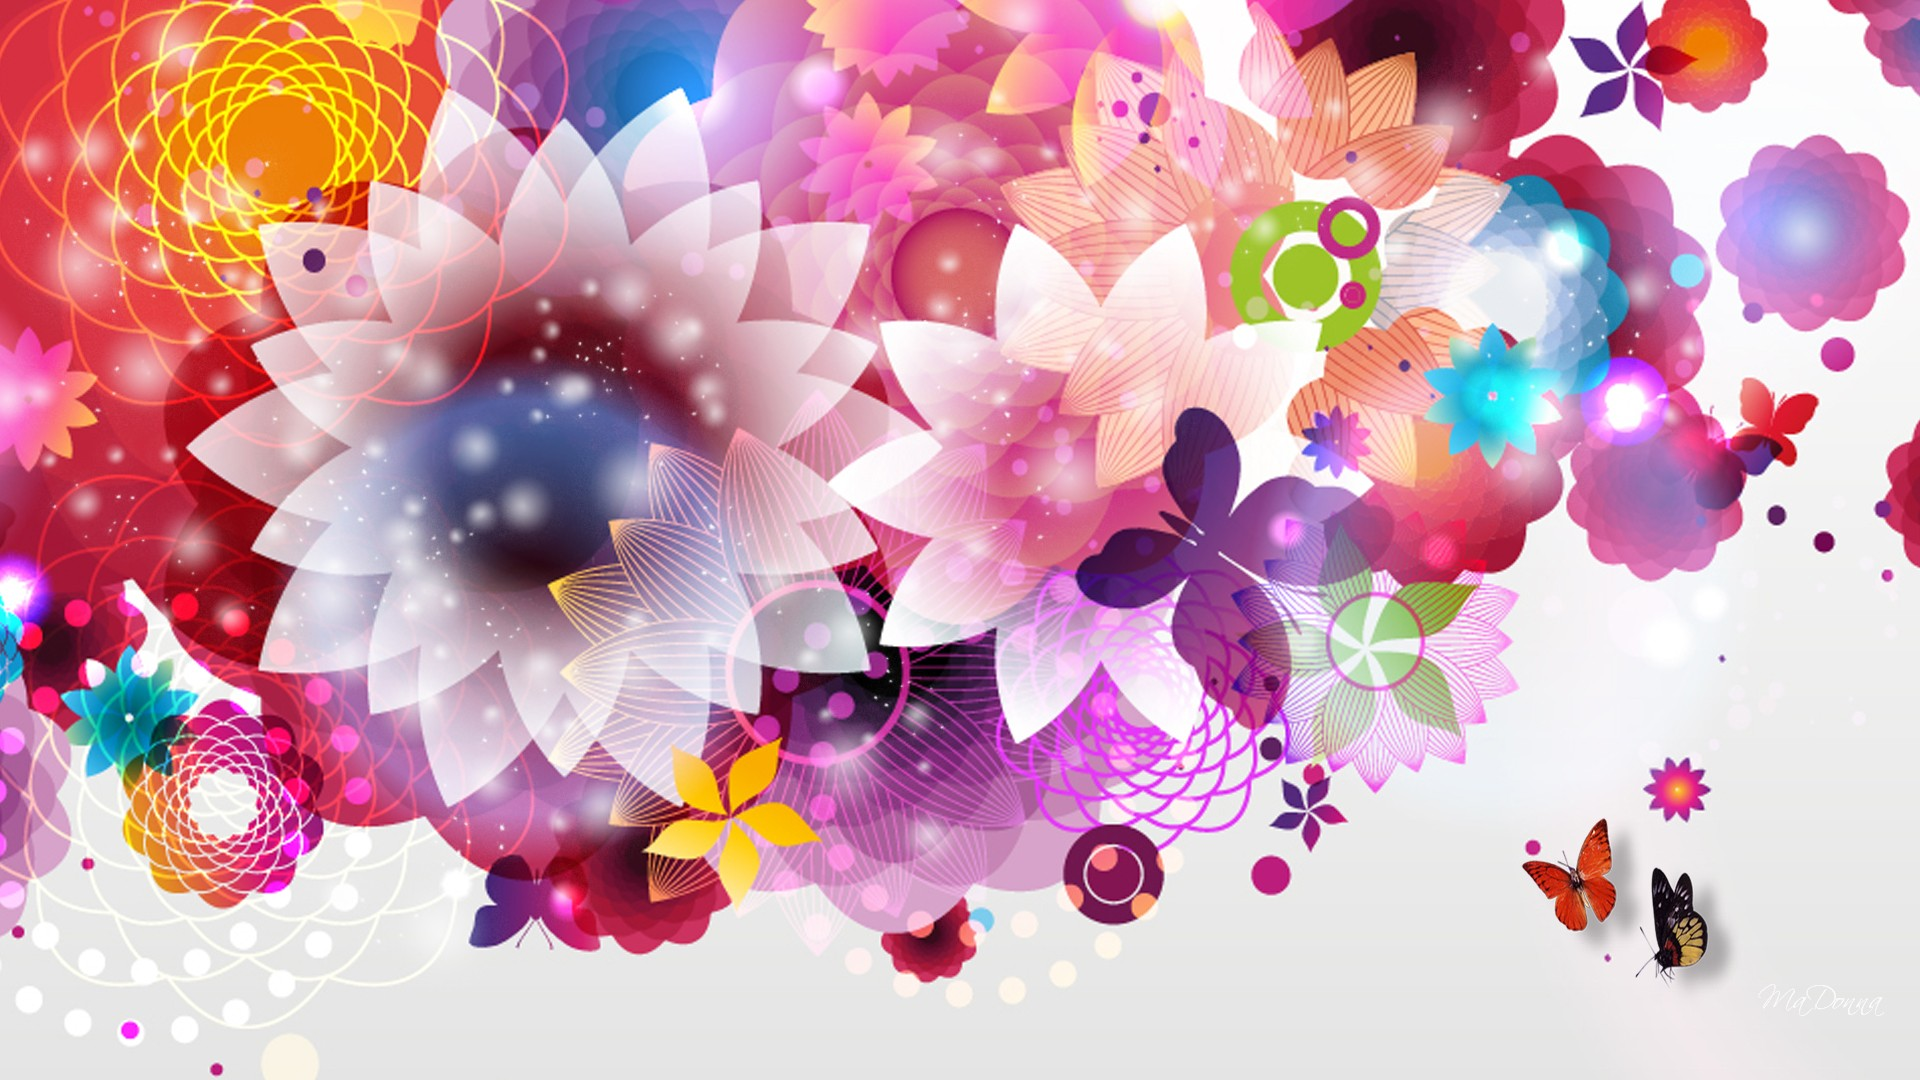 bright floral wallpaper for walls and desktop | hd wallpapers